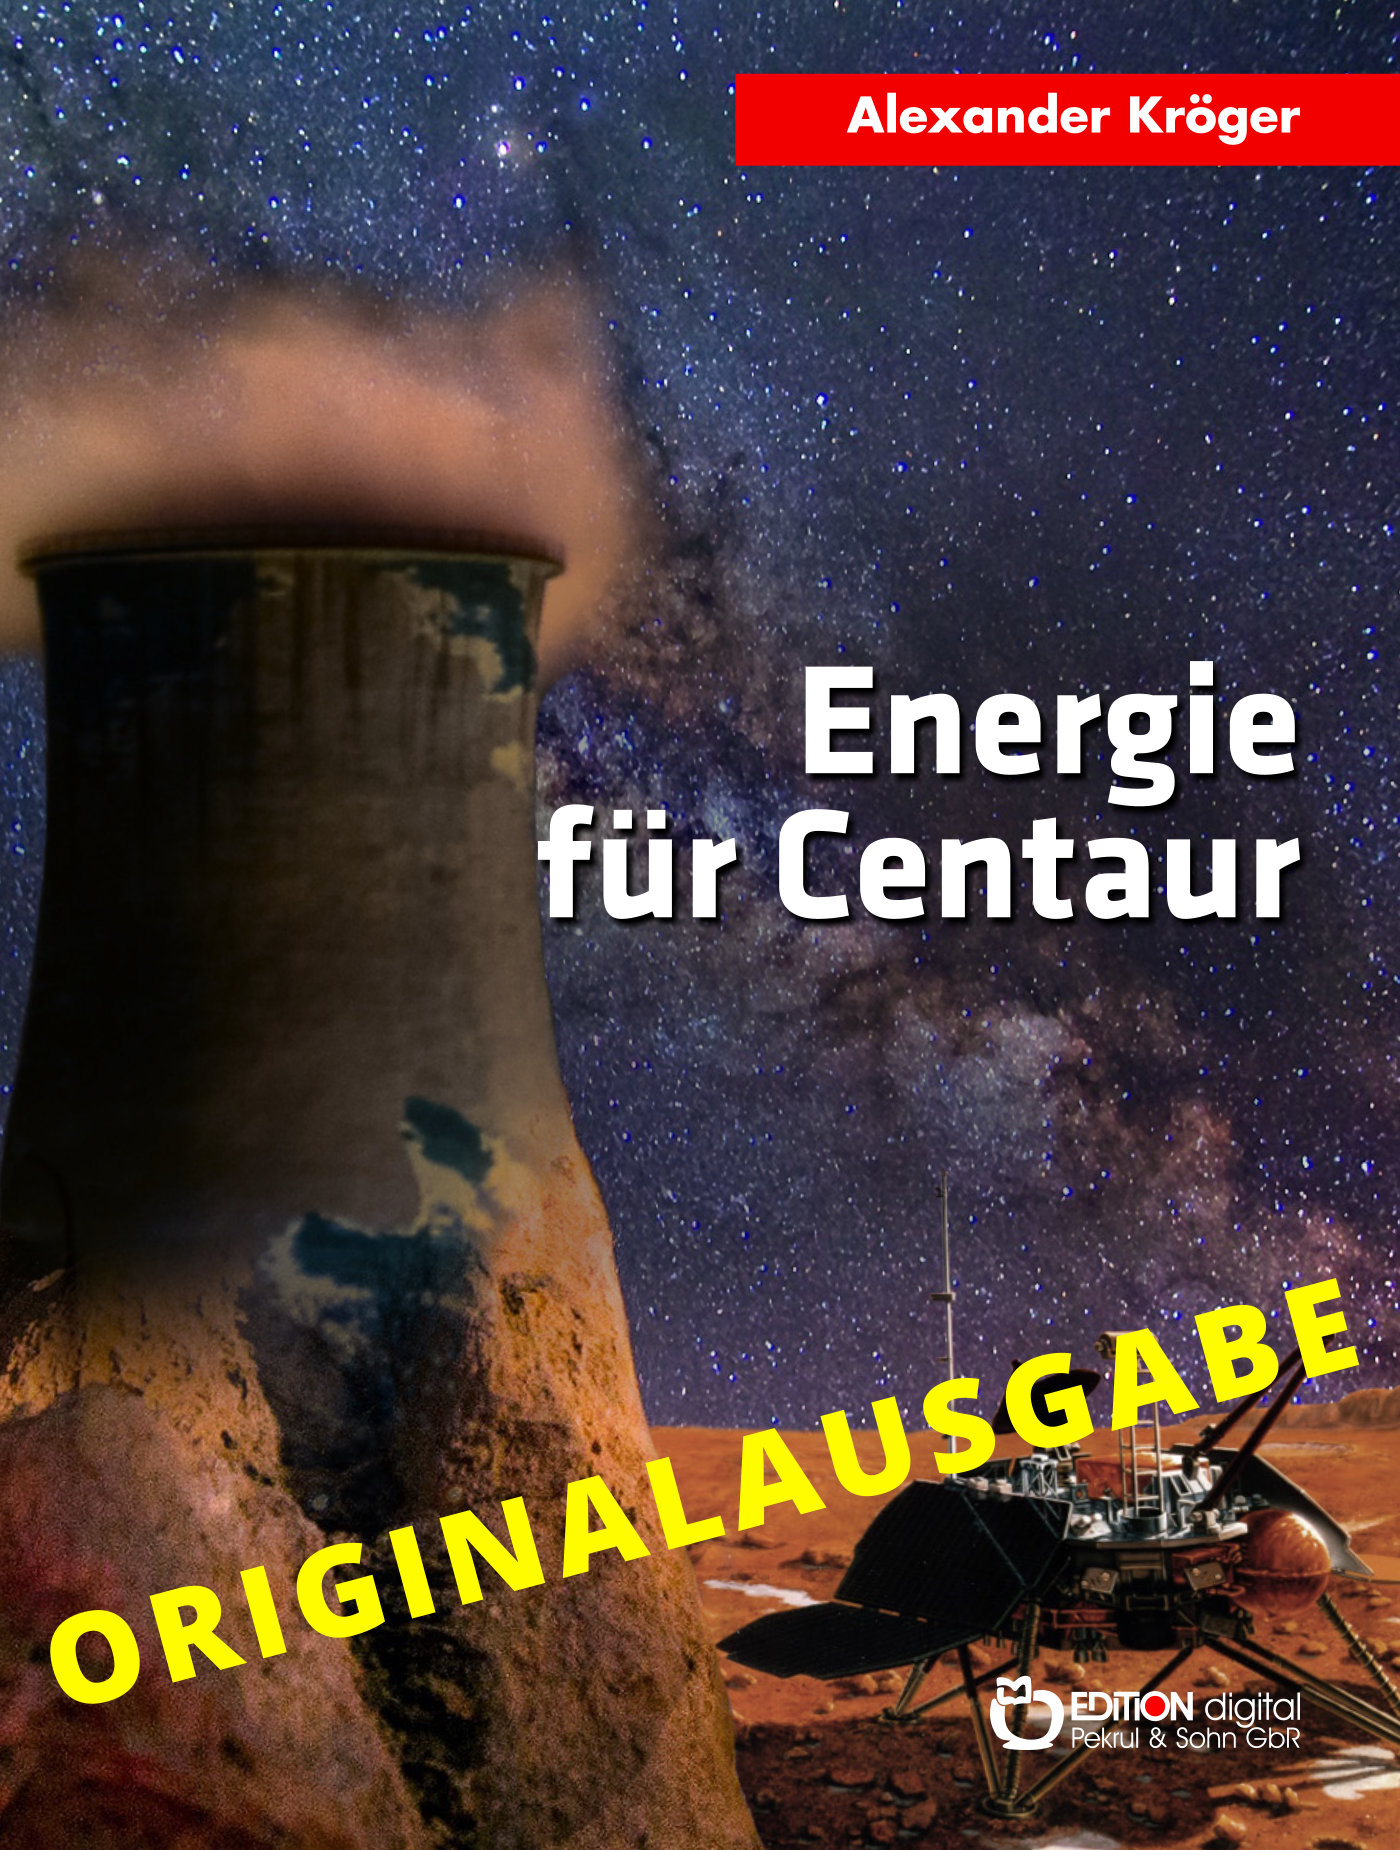 Energie für Centaur - Originalausgabe. Wissenschaftlich-phantastischer Roman von Alexander Kröger